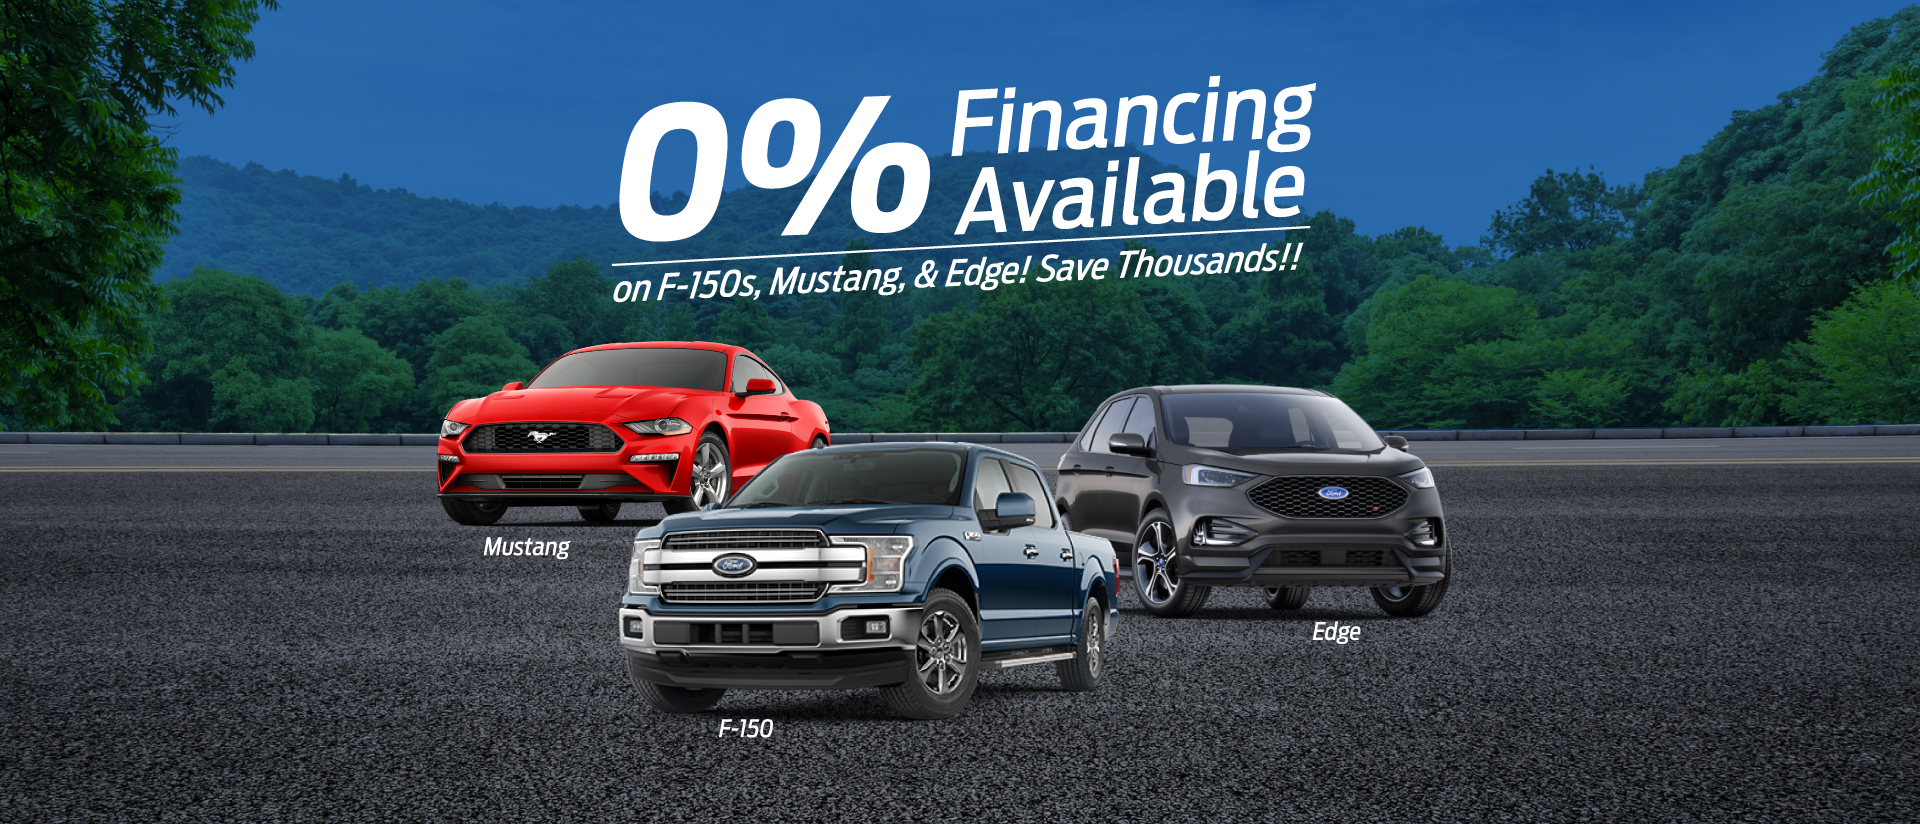 563141375 Peace River Ford 68x9 Homepage Slide Option 1 21x9